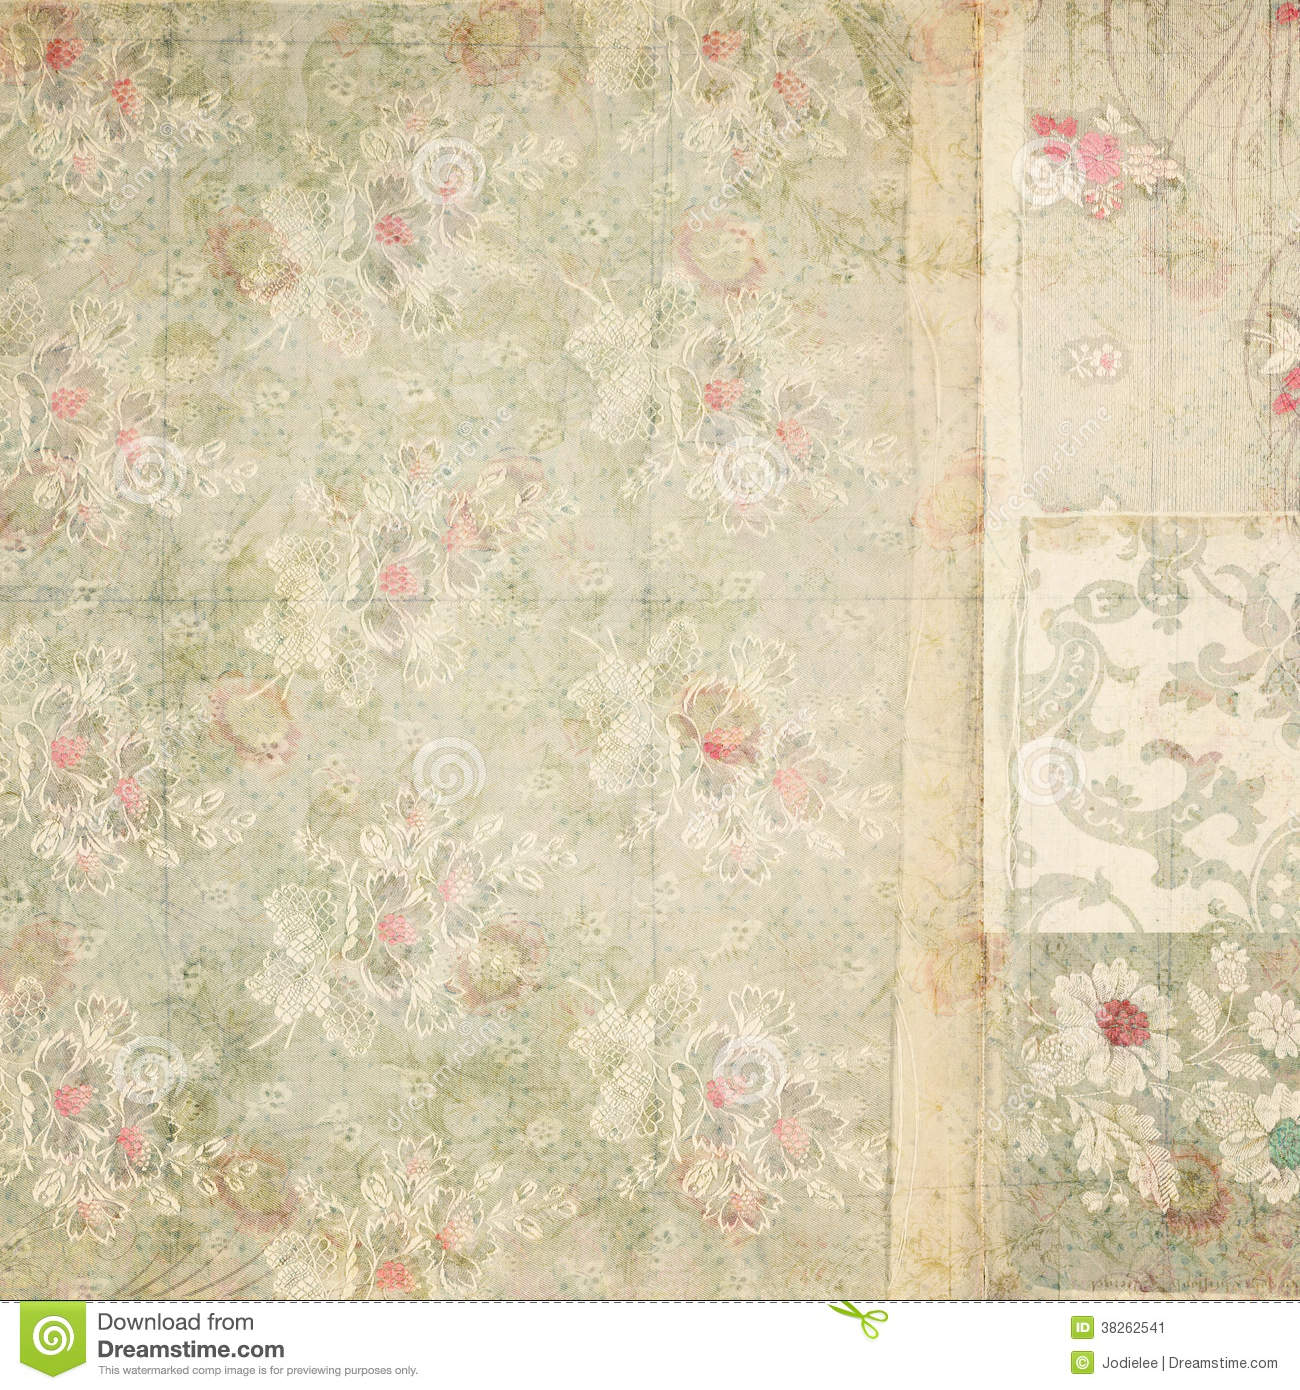 Patchwork of grungy textured antique vintage floral wallpaper collage ...